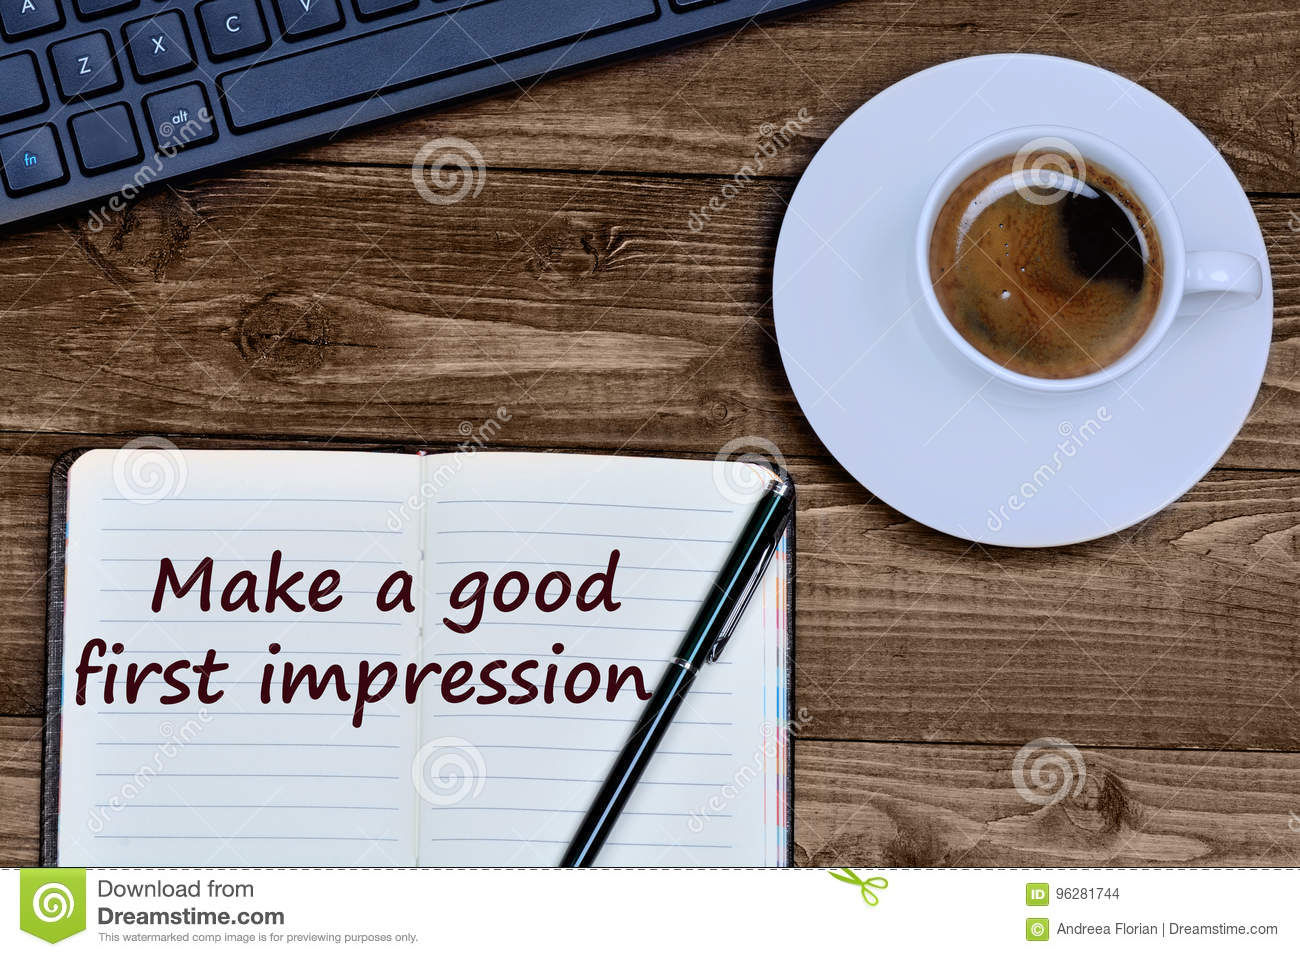 Text Make a good first impression on notebook